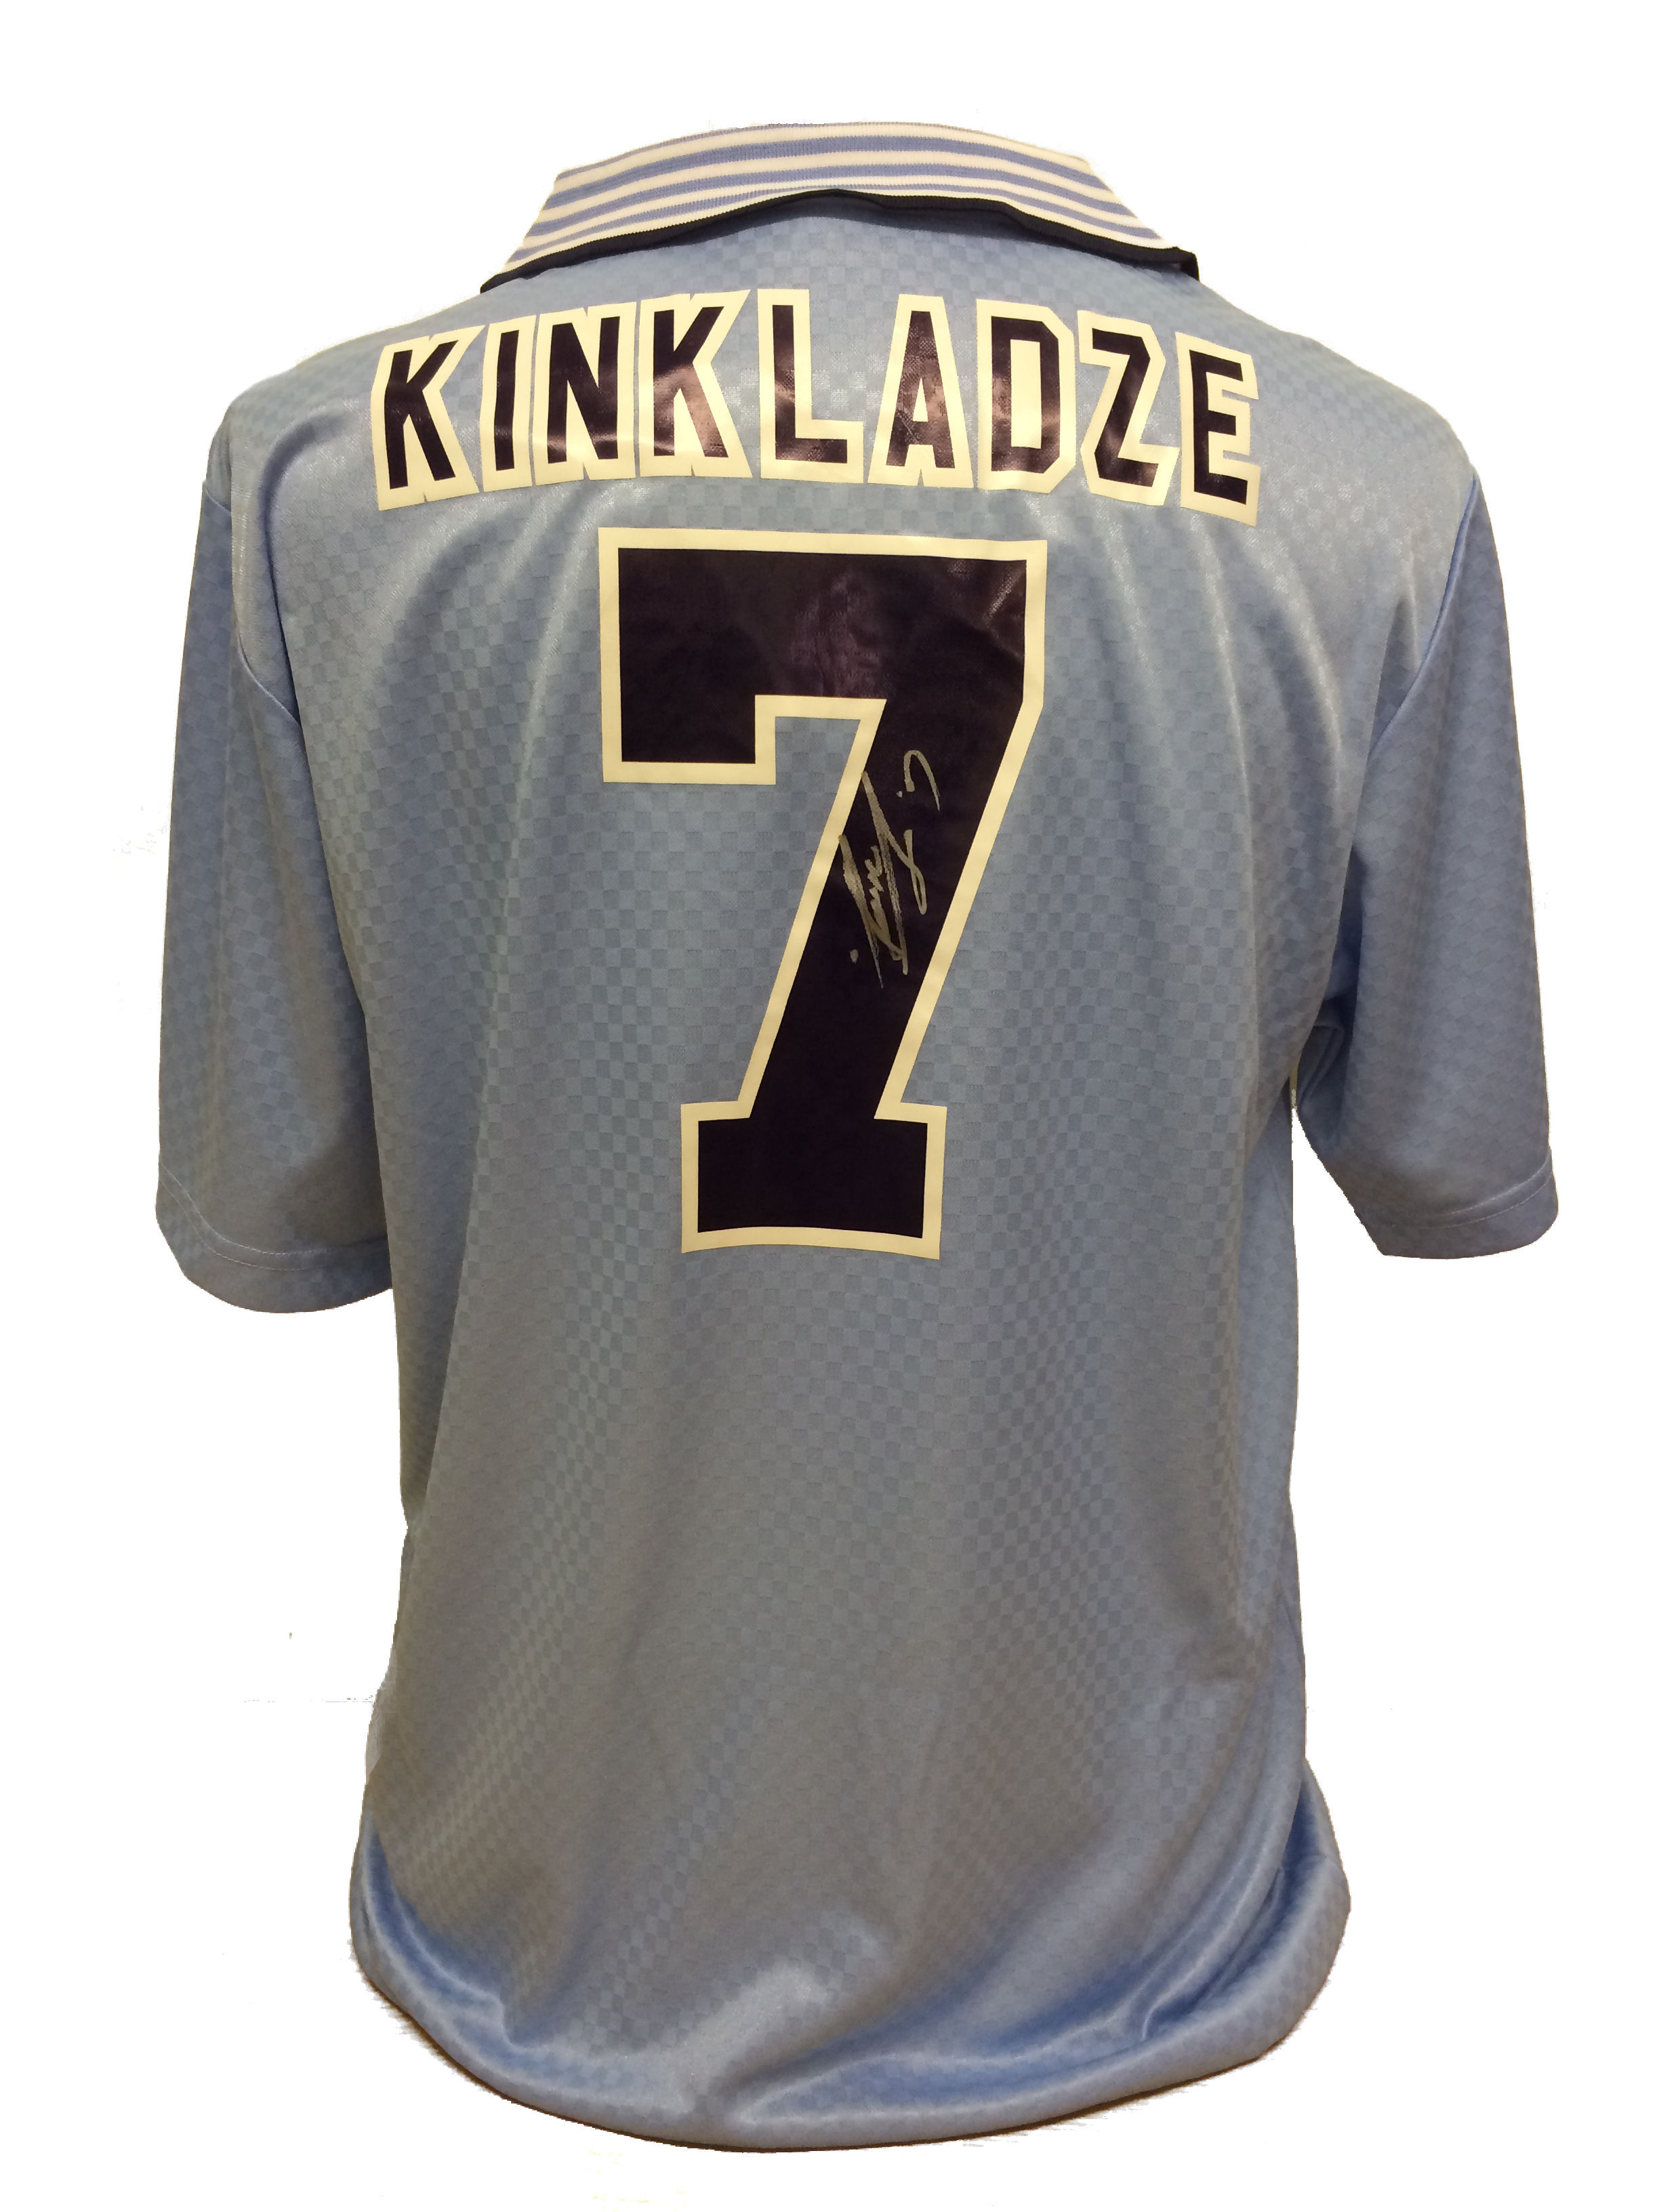 finest selection 88ead 0b210 Manchester City replica shirt signed by Georgi Kinkladze